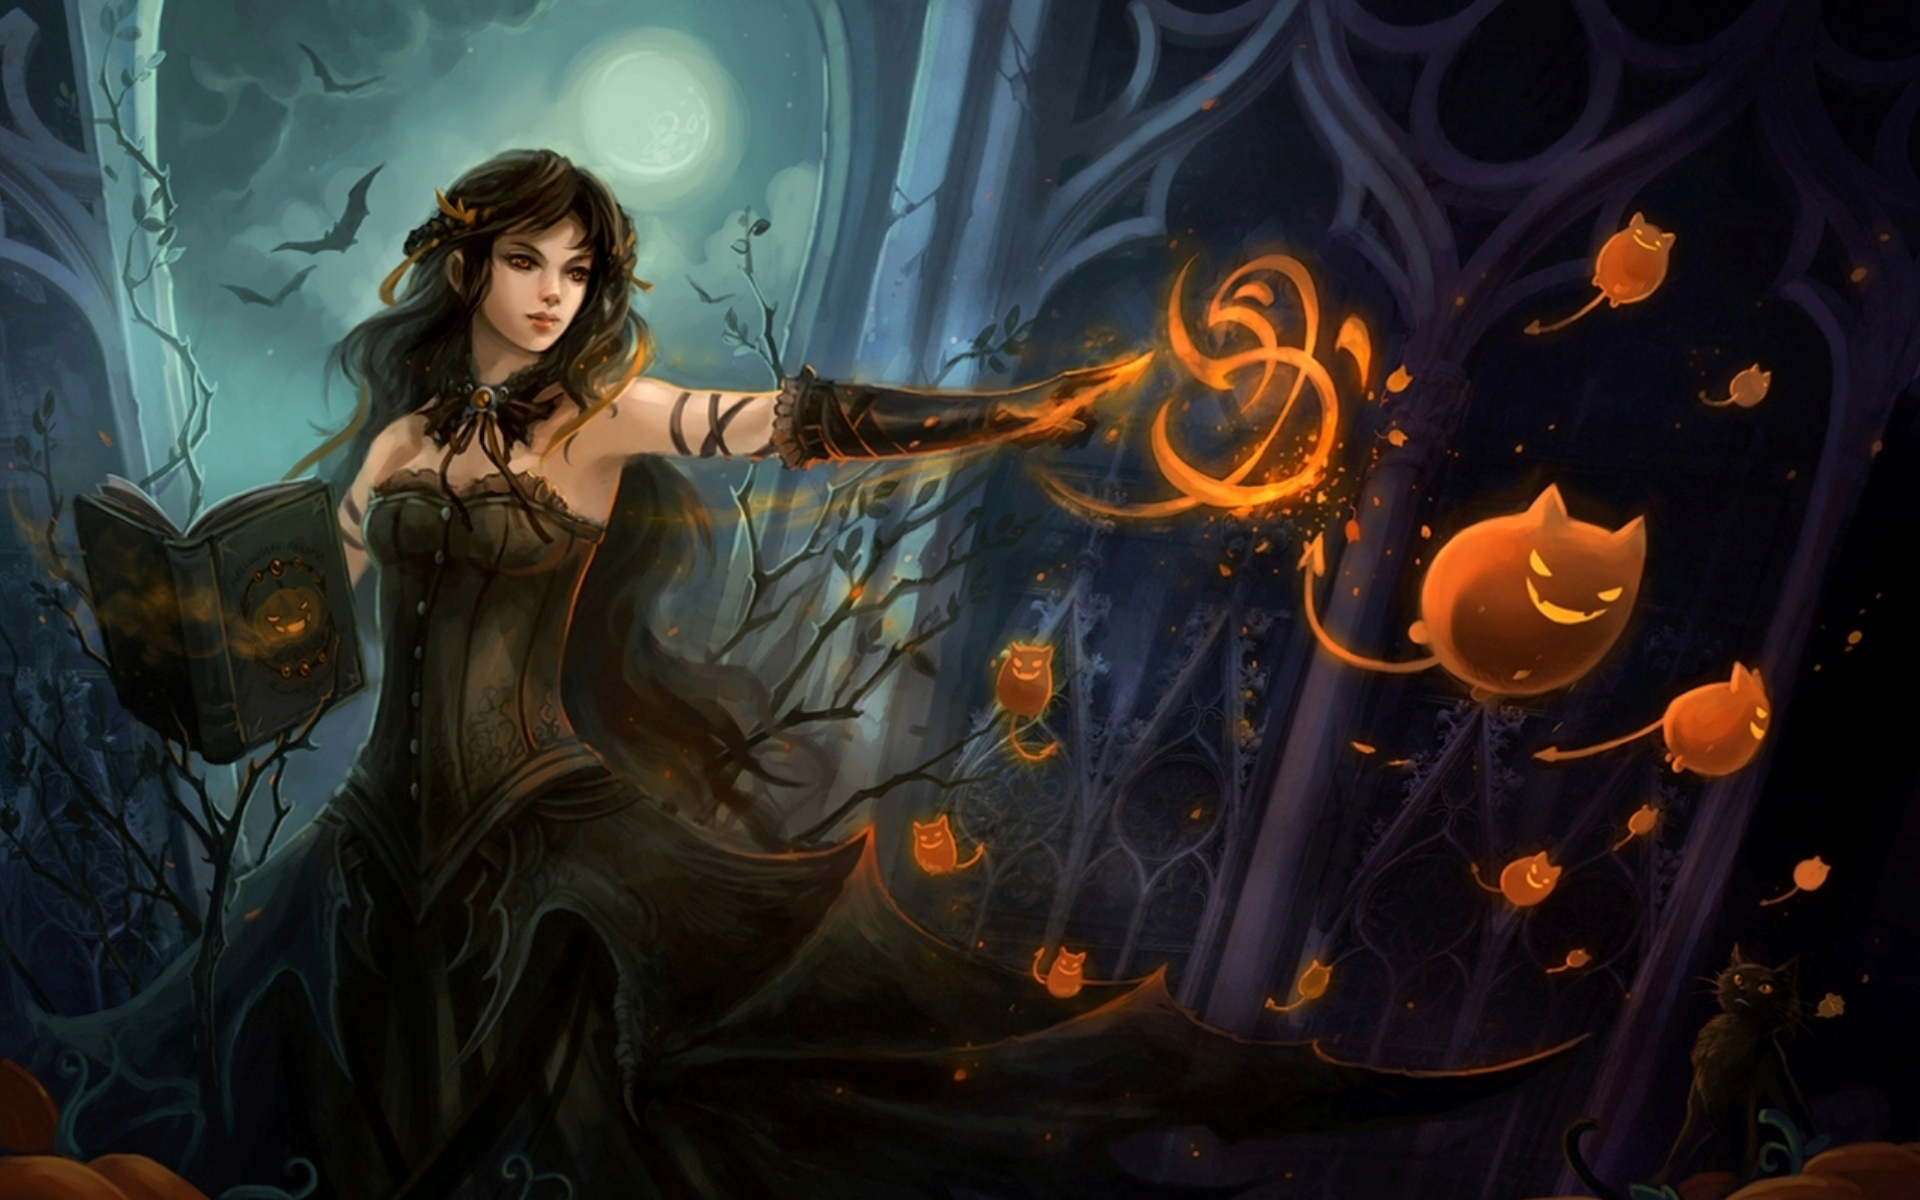 Night of all Hallows Art - ID: 87155 - Art Abyss